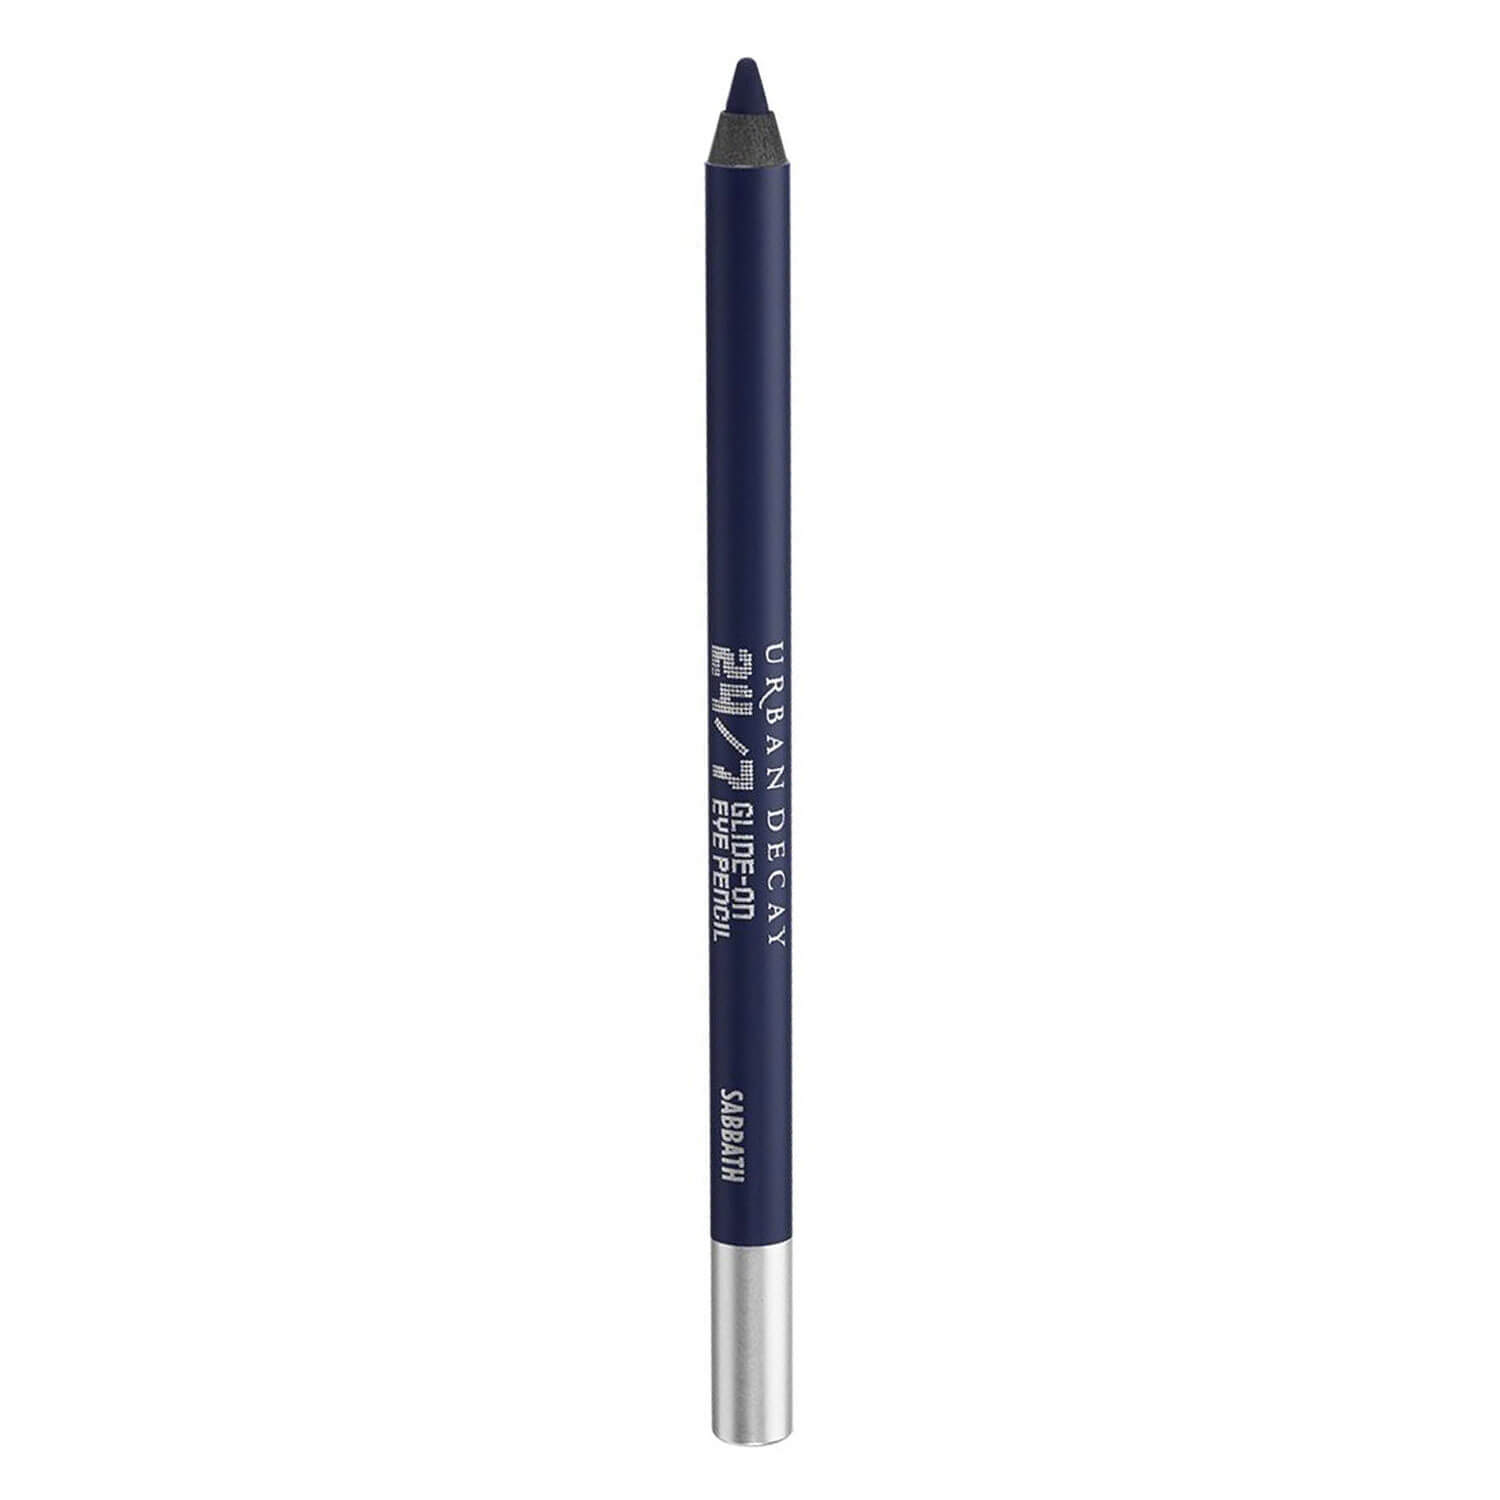 24/7 Glide-On - Eye Pencil Sabbath - 1.2g